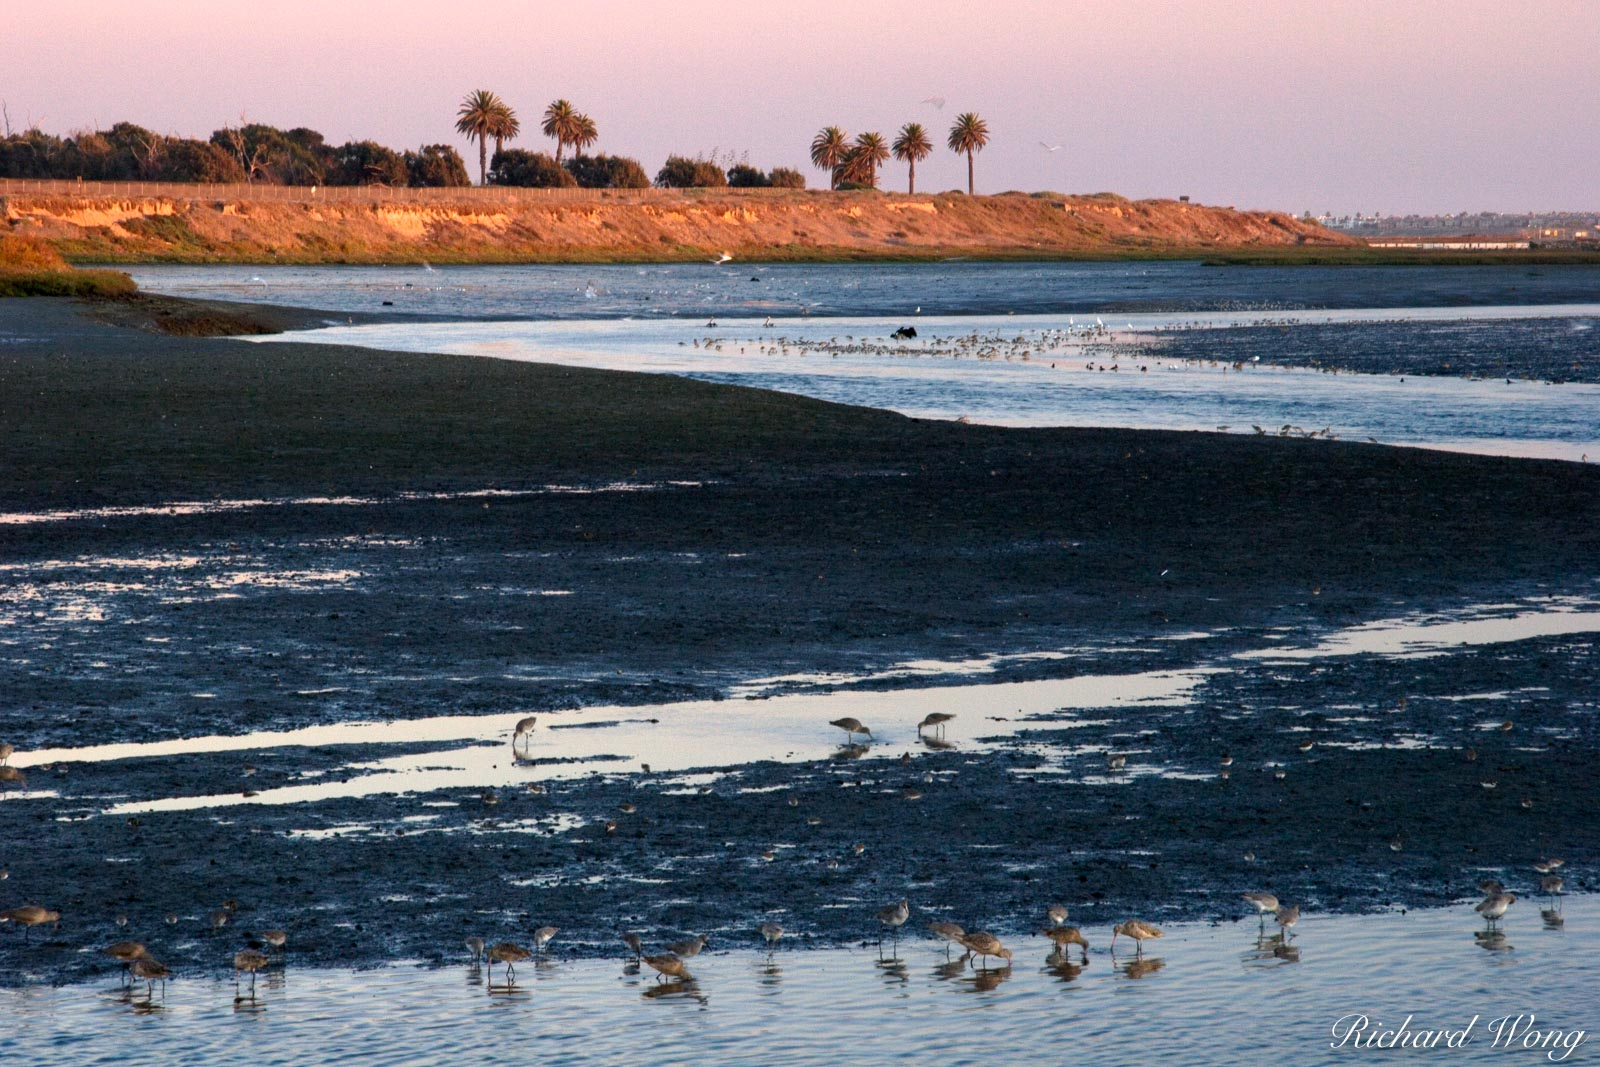 Bolsa Chica Ecological Reserve, Seal Beach, California, photo, photo